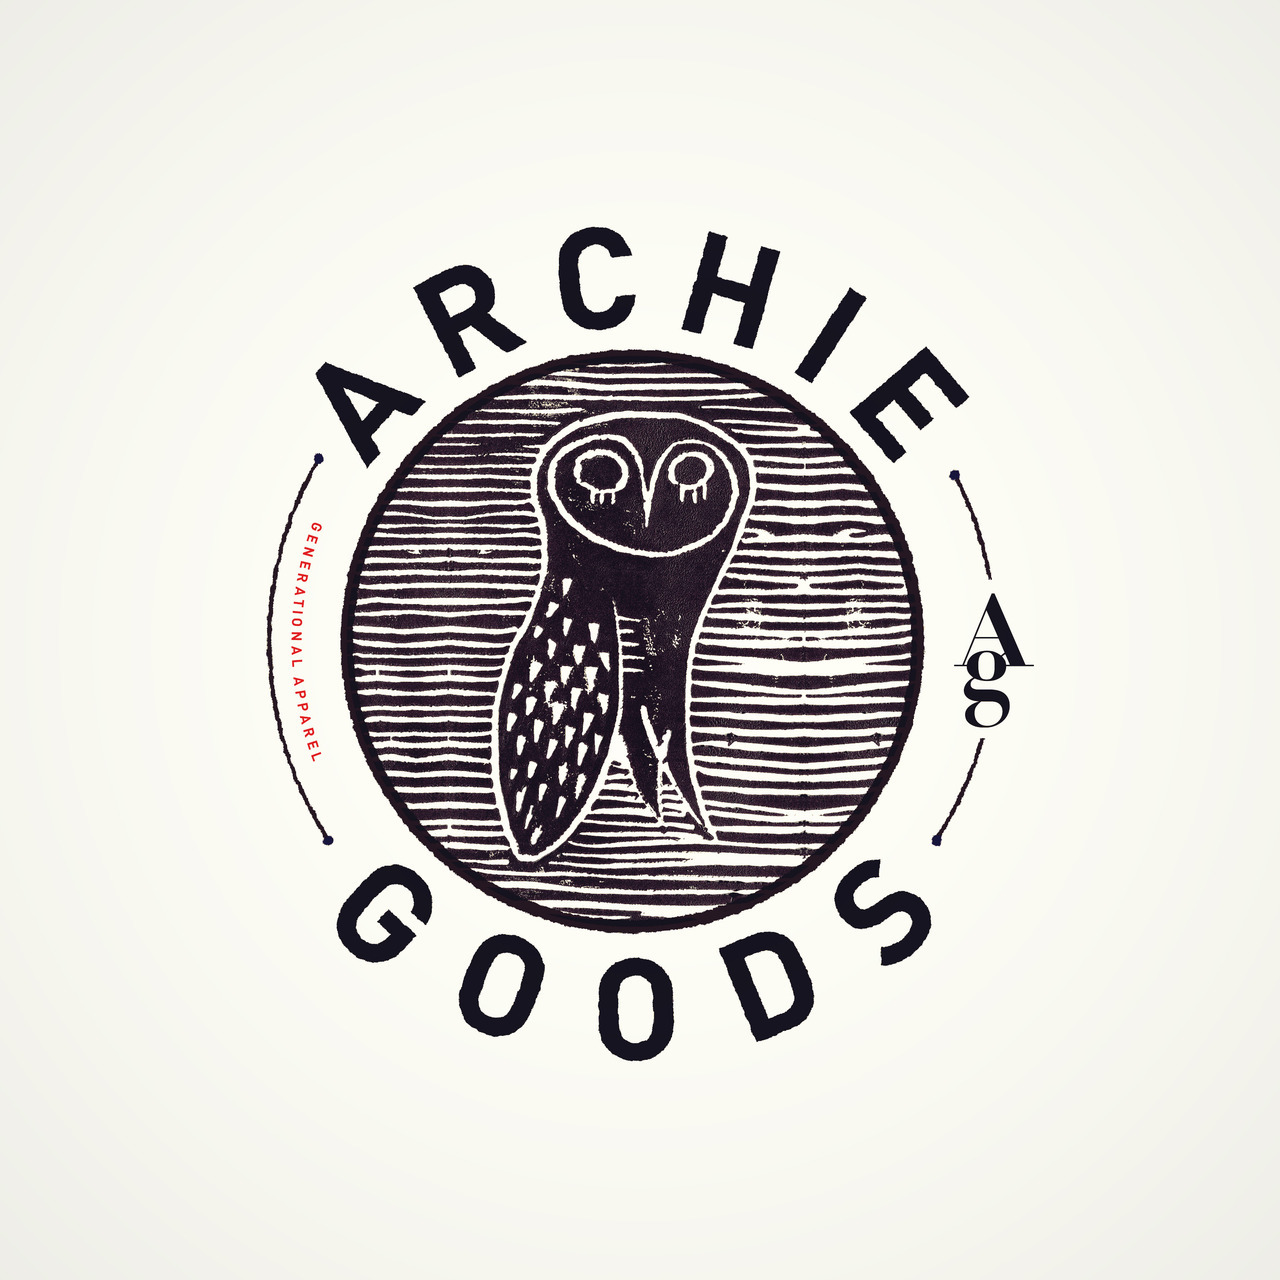 Archie Goods Bootmakers  Early draft logo work sneak peek